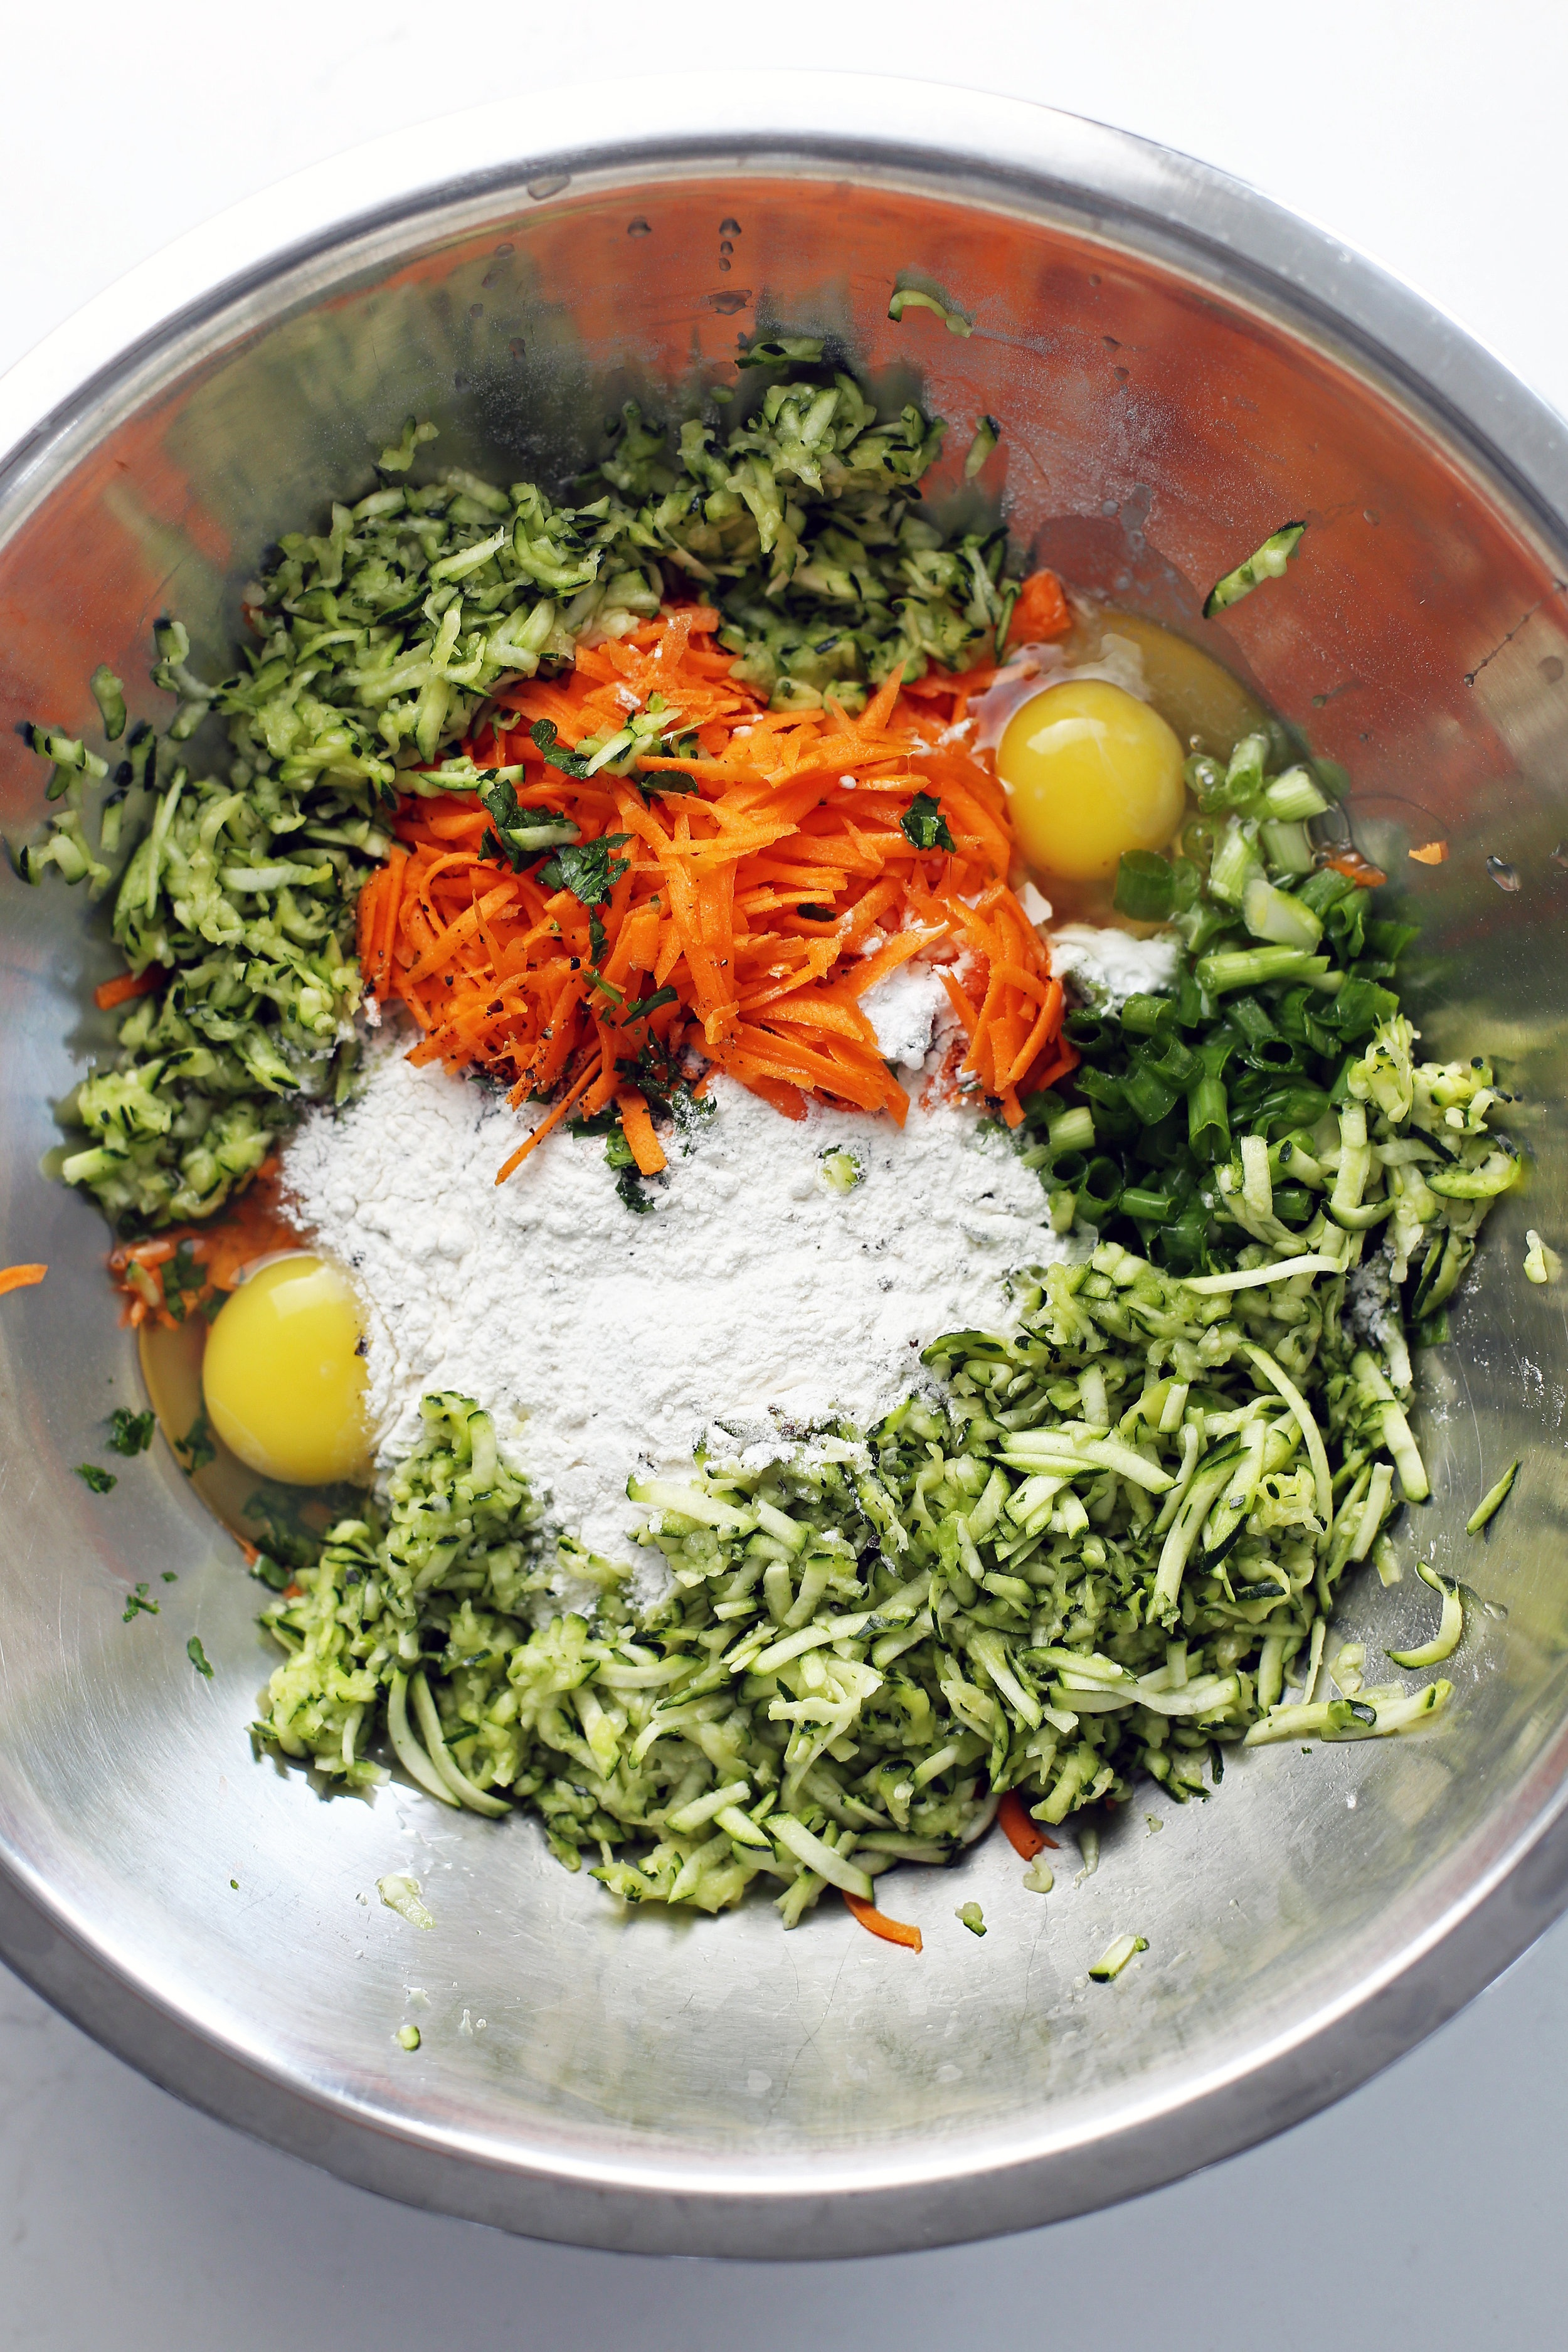 Shredded zucchini, shredded carrots, green onion, parsley, eggs, flour, baking powder, and cracked black pepper in a large stainless steel bowl.